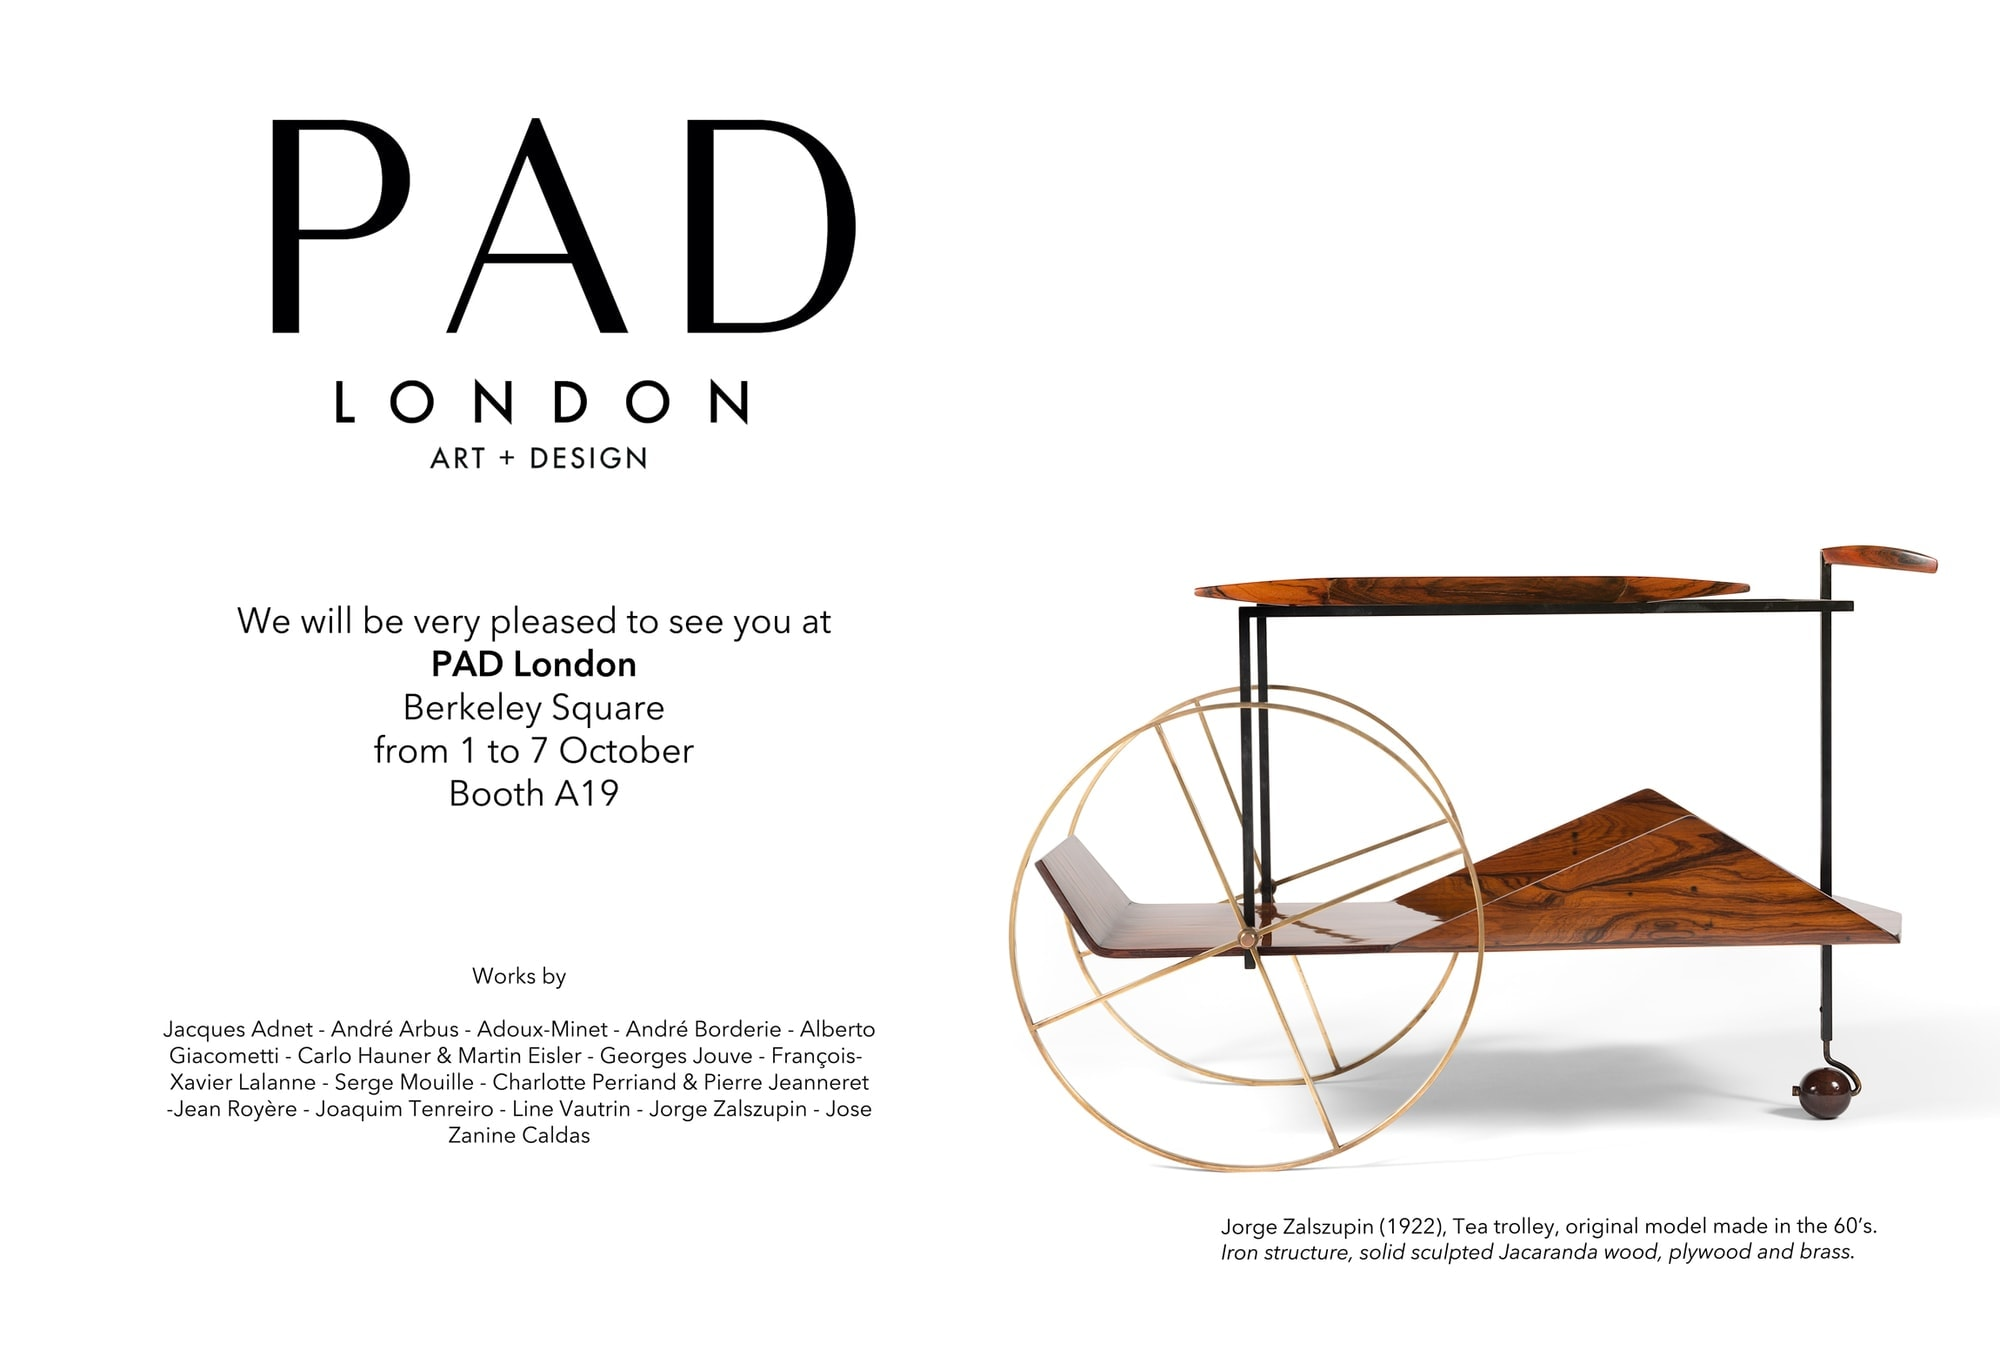 PAD London, from 1 to 7 October, 2018